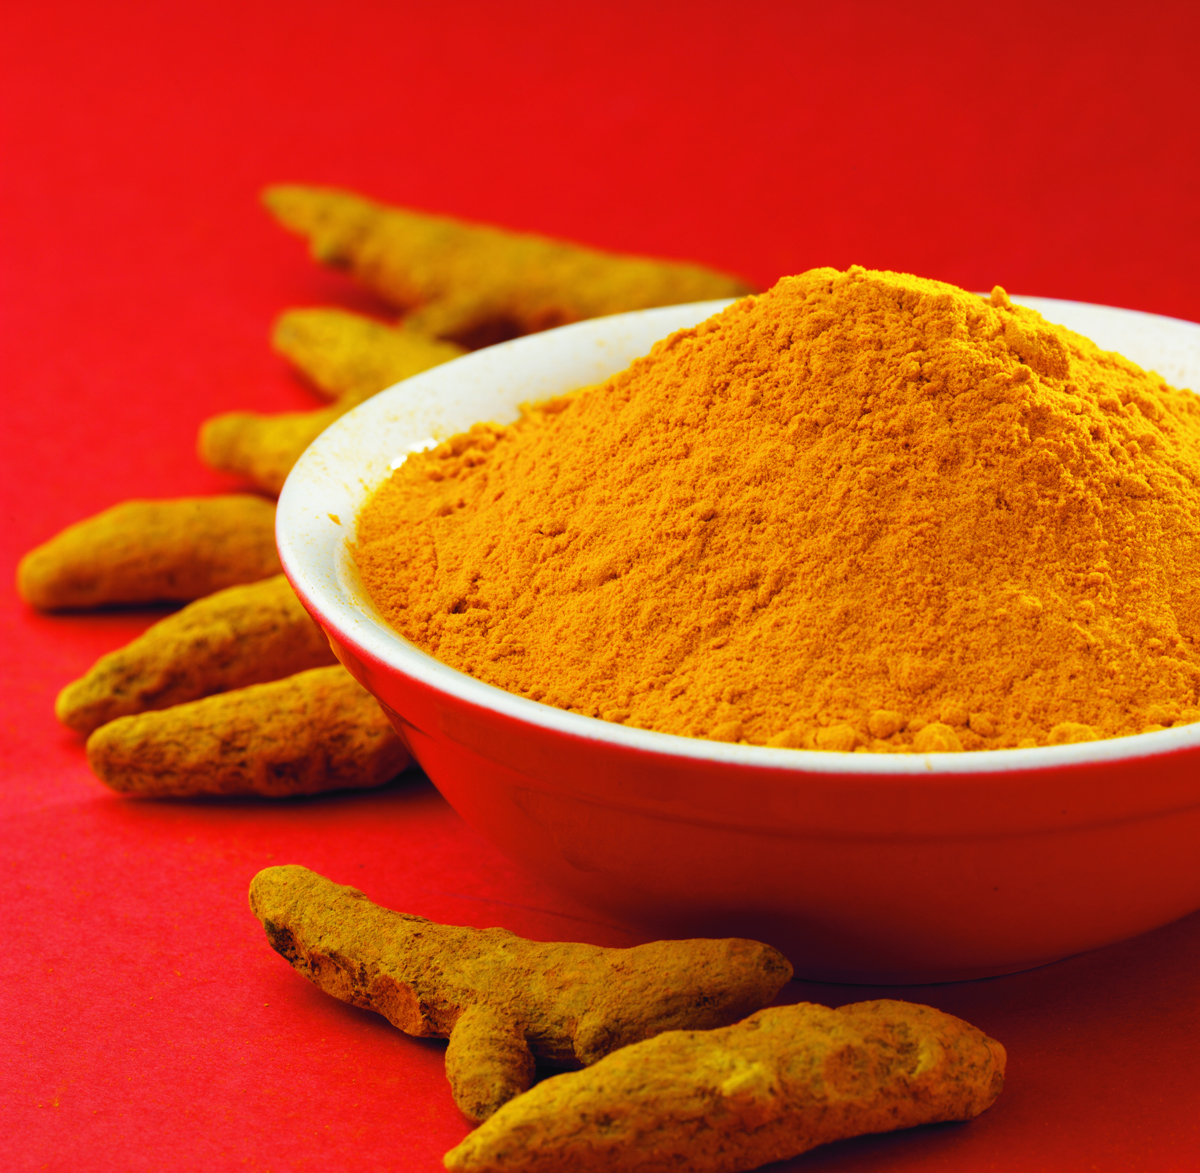 Rediscover the health benefits of turmeric